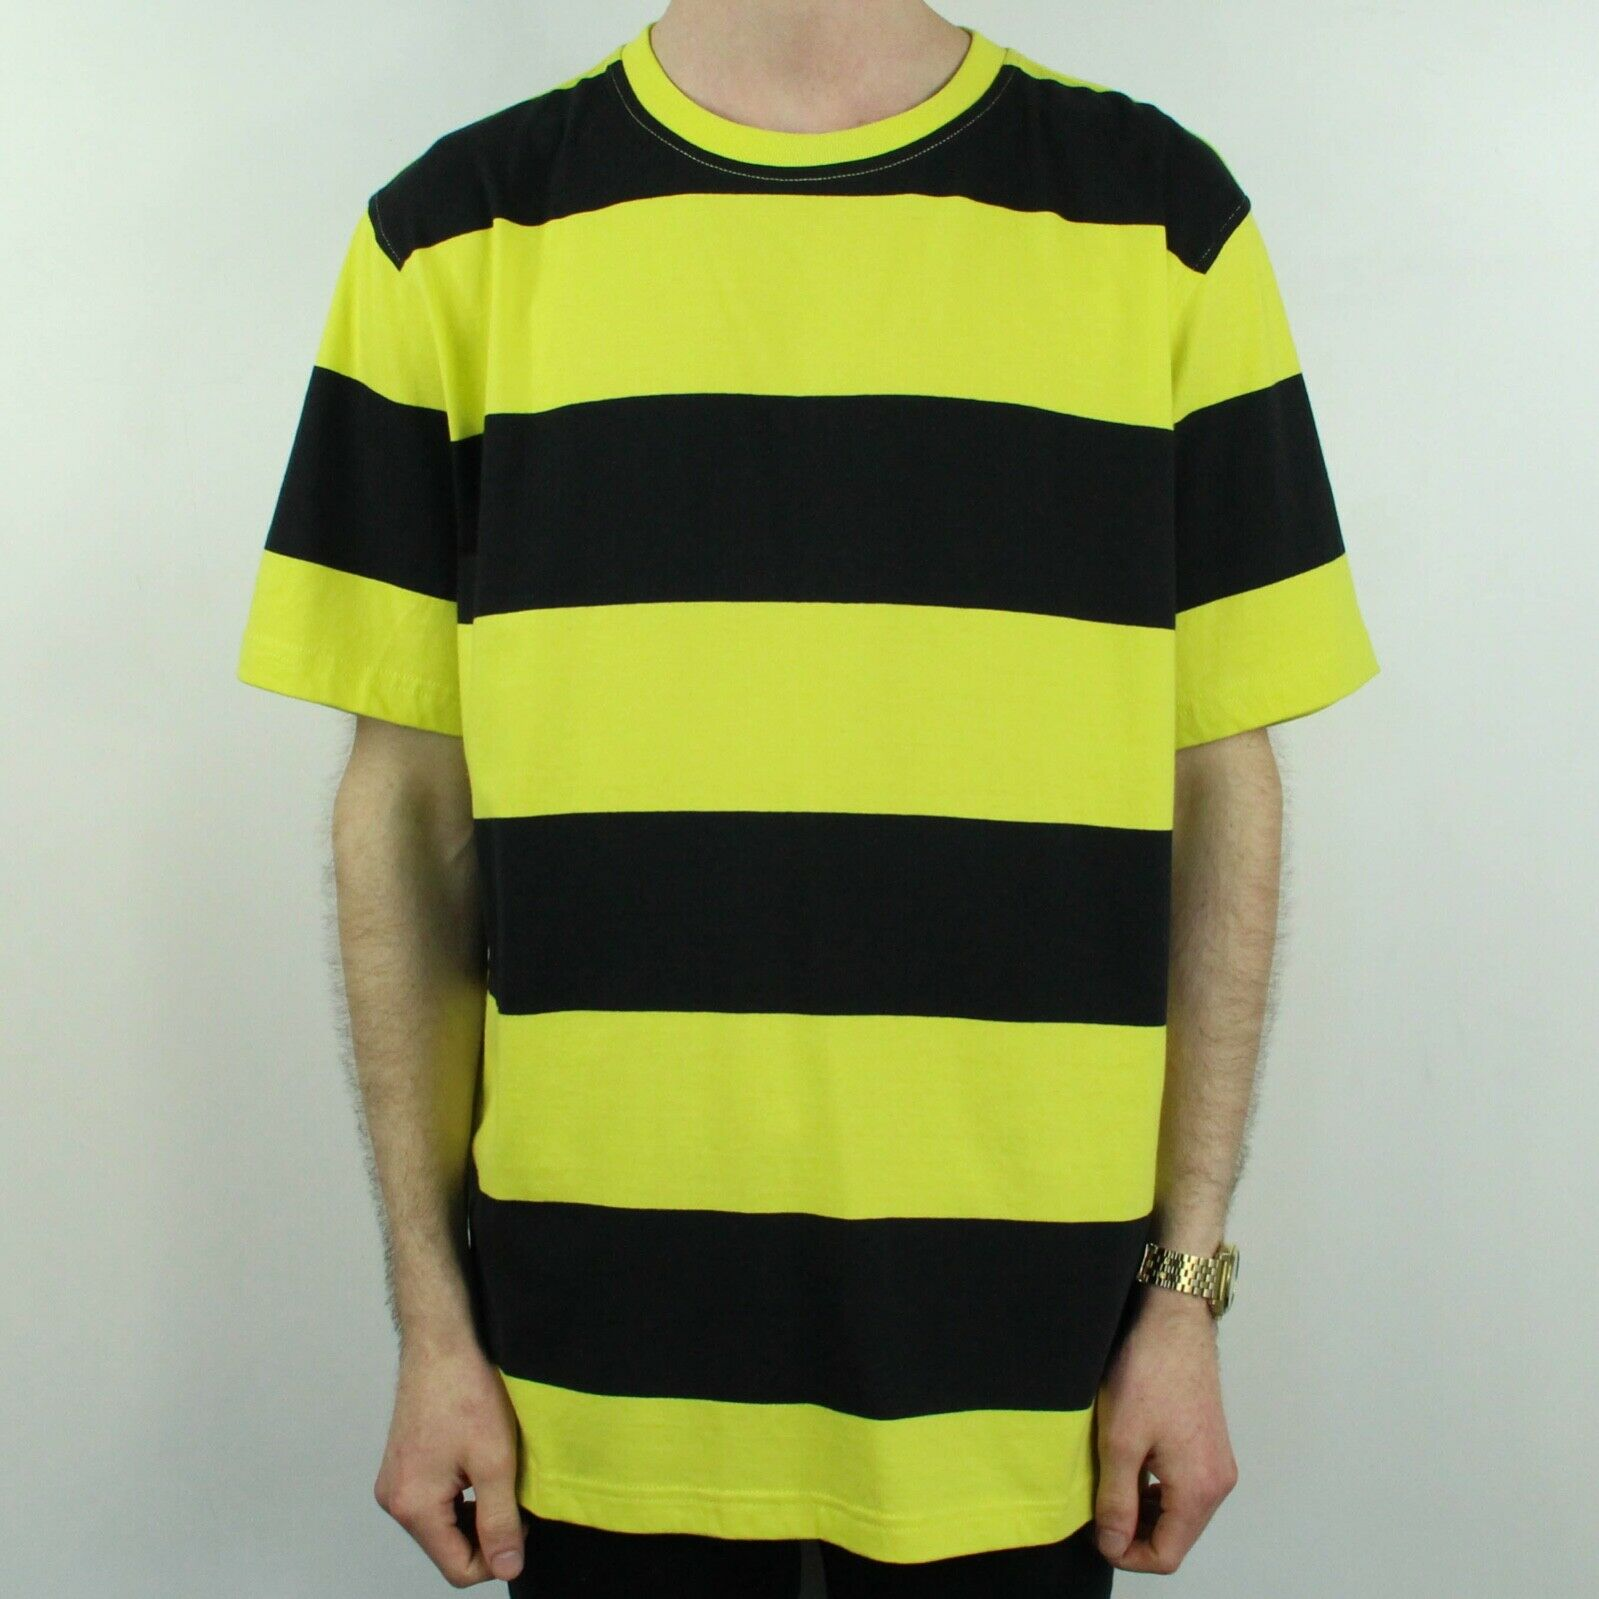 Stussy Bold Stripe Crew T-Shirt Tee Brand New in Lime in size S,M,L